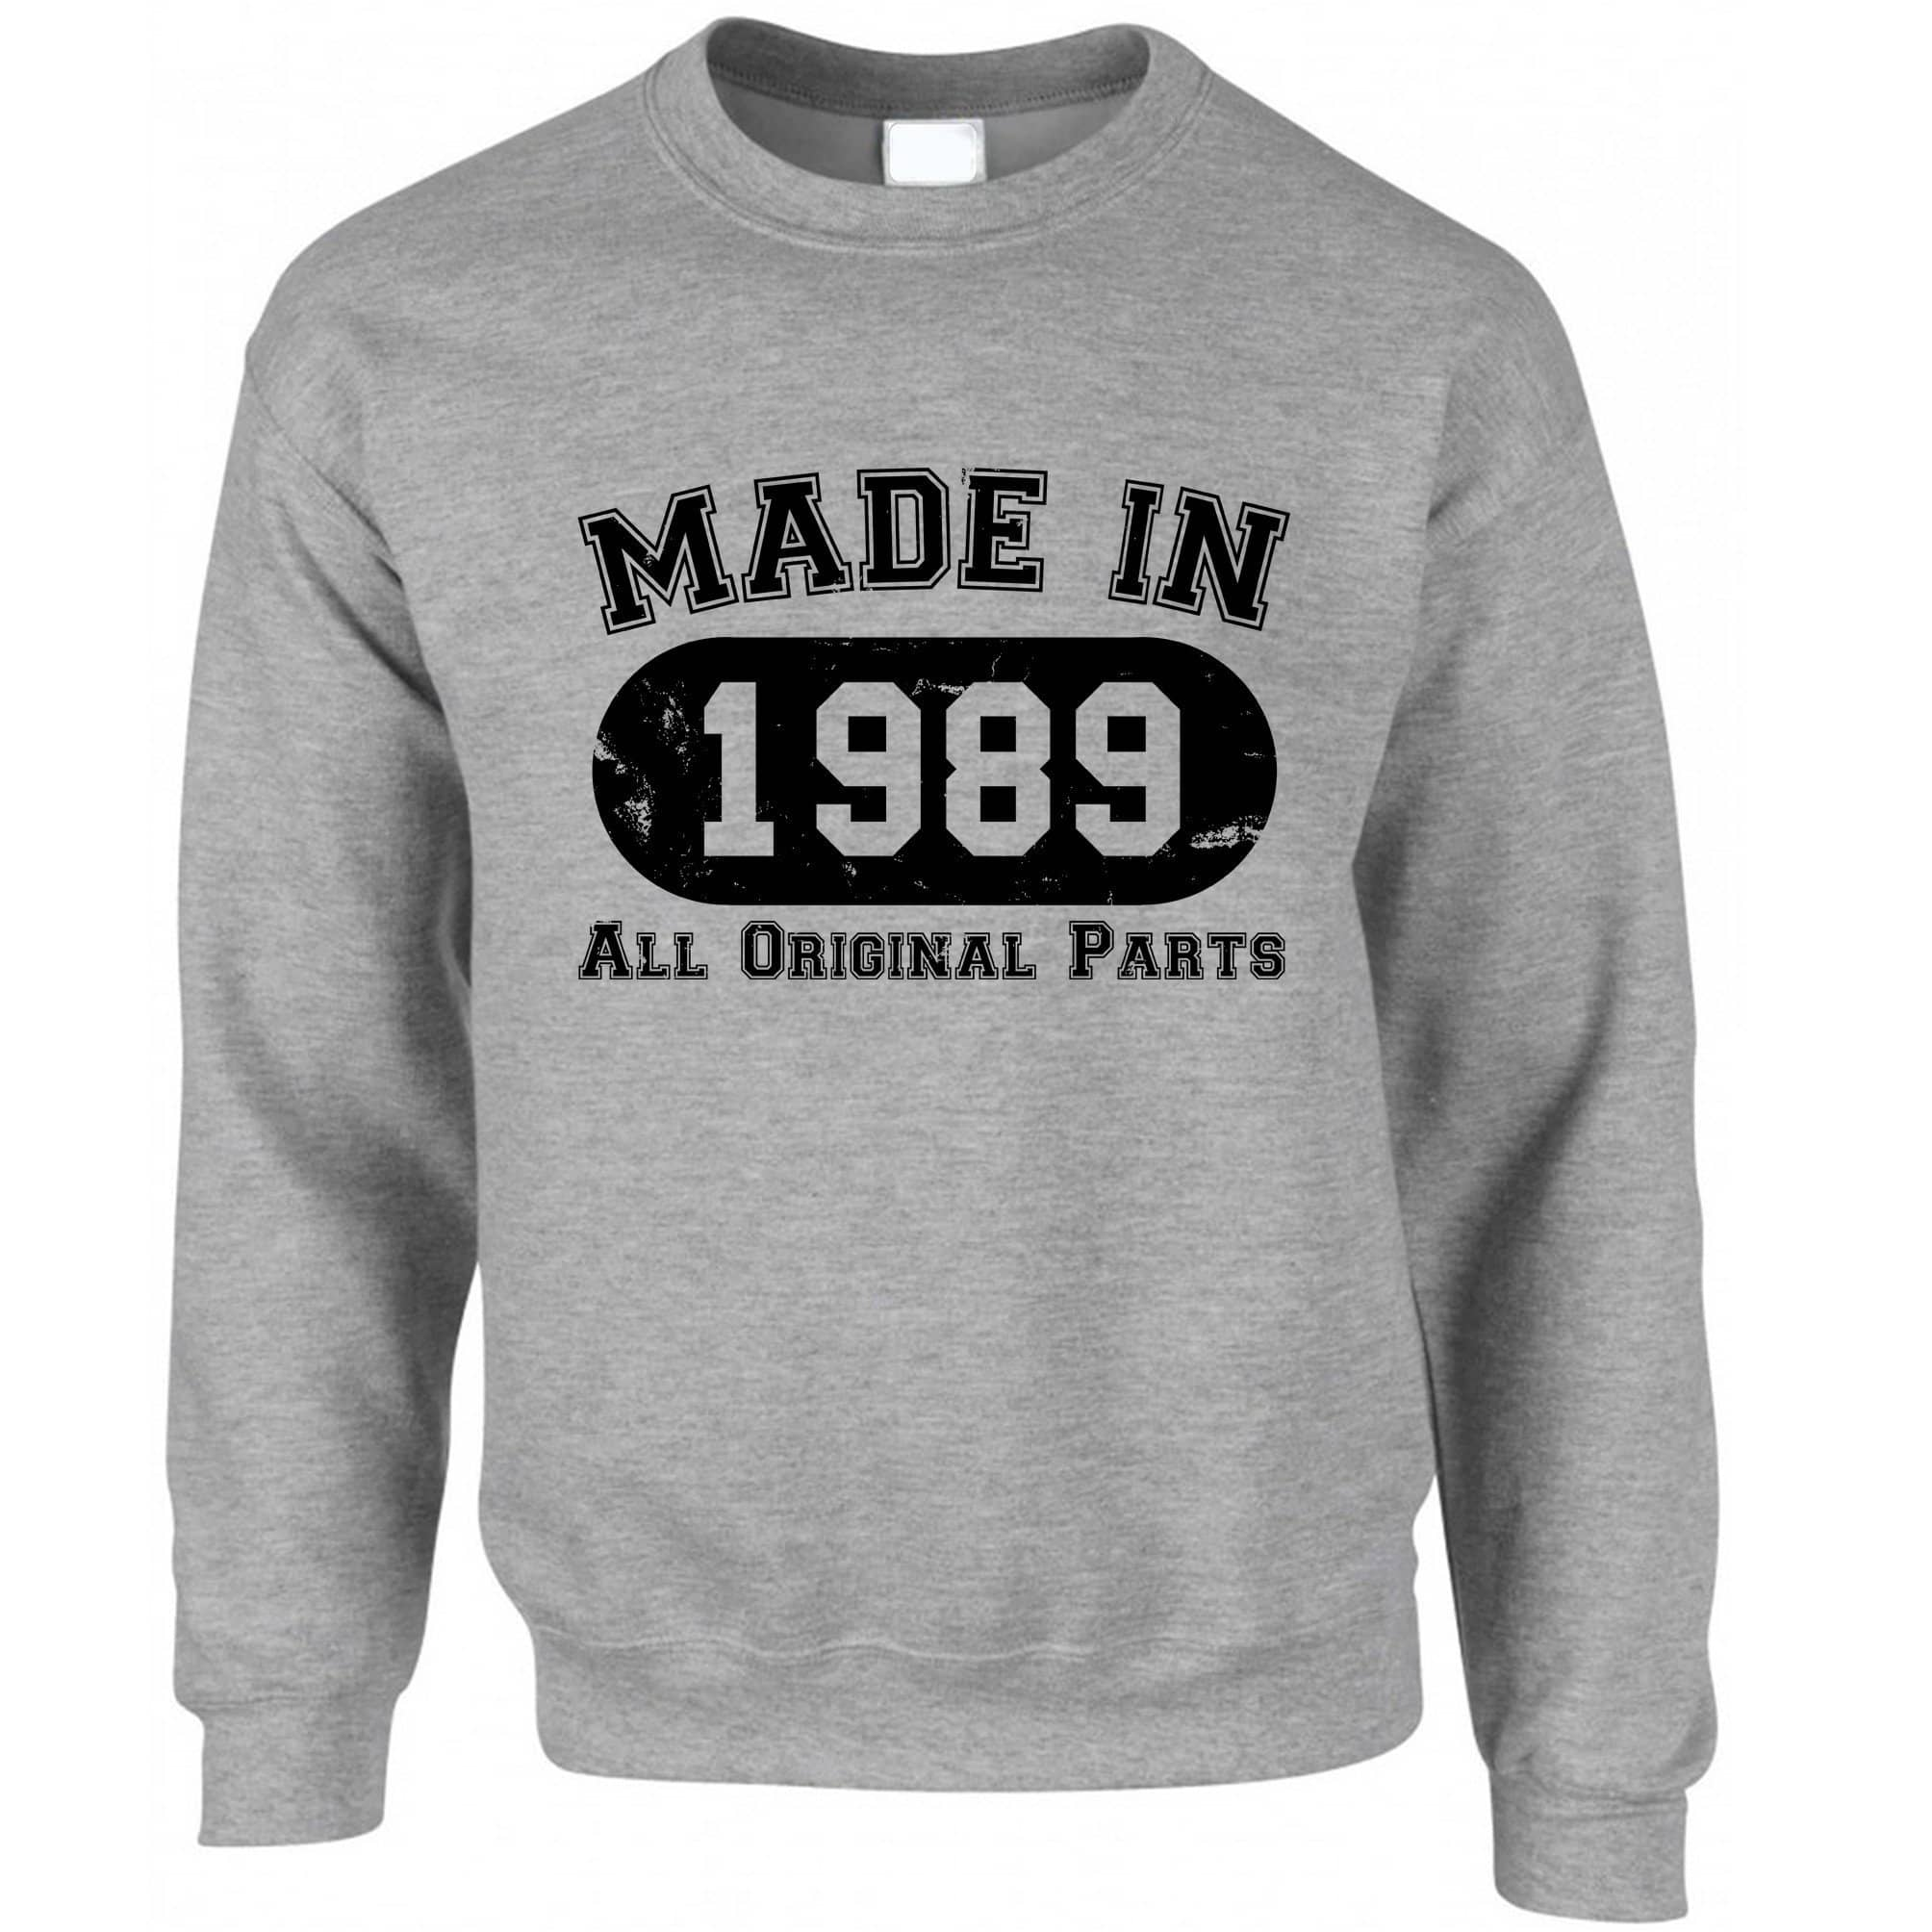 Made in 1989 All Original Parts Sweatshirt Jumper [Distressed]